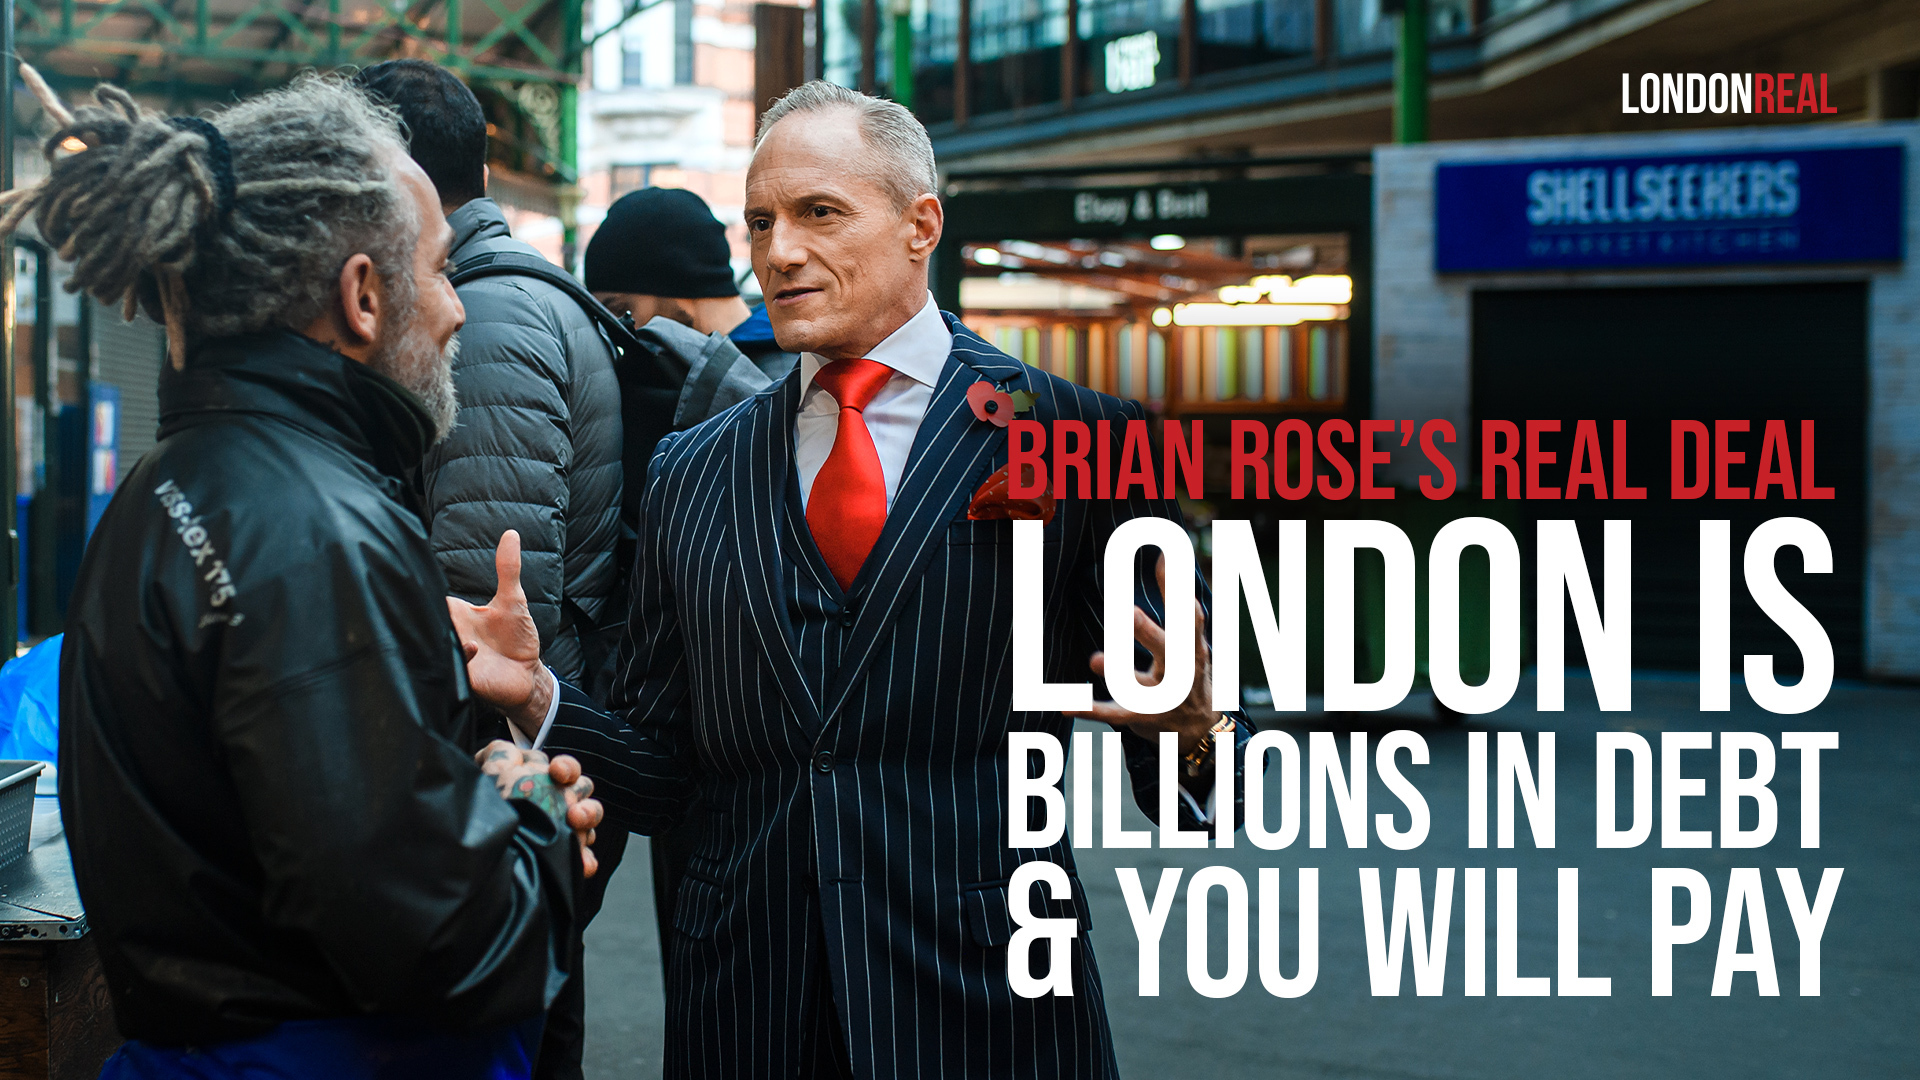 Brian Rose's Real Deal - London Is Now Billions Of Pounds In Debt & You Will Pay - How Our Soon To Be Ex-Mayor Is Driving This City Into The Ground